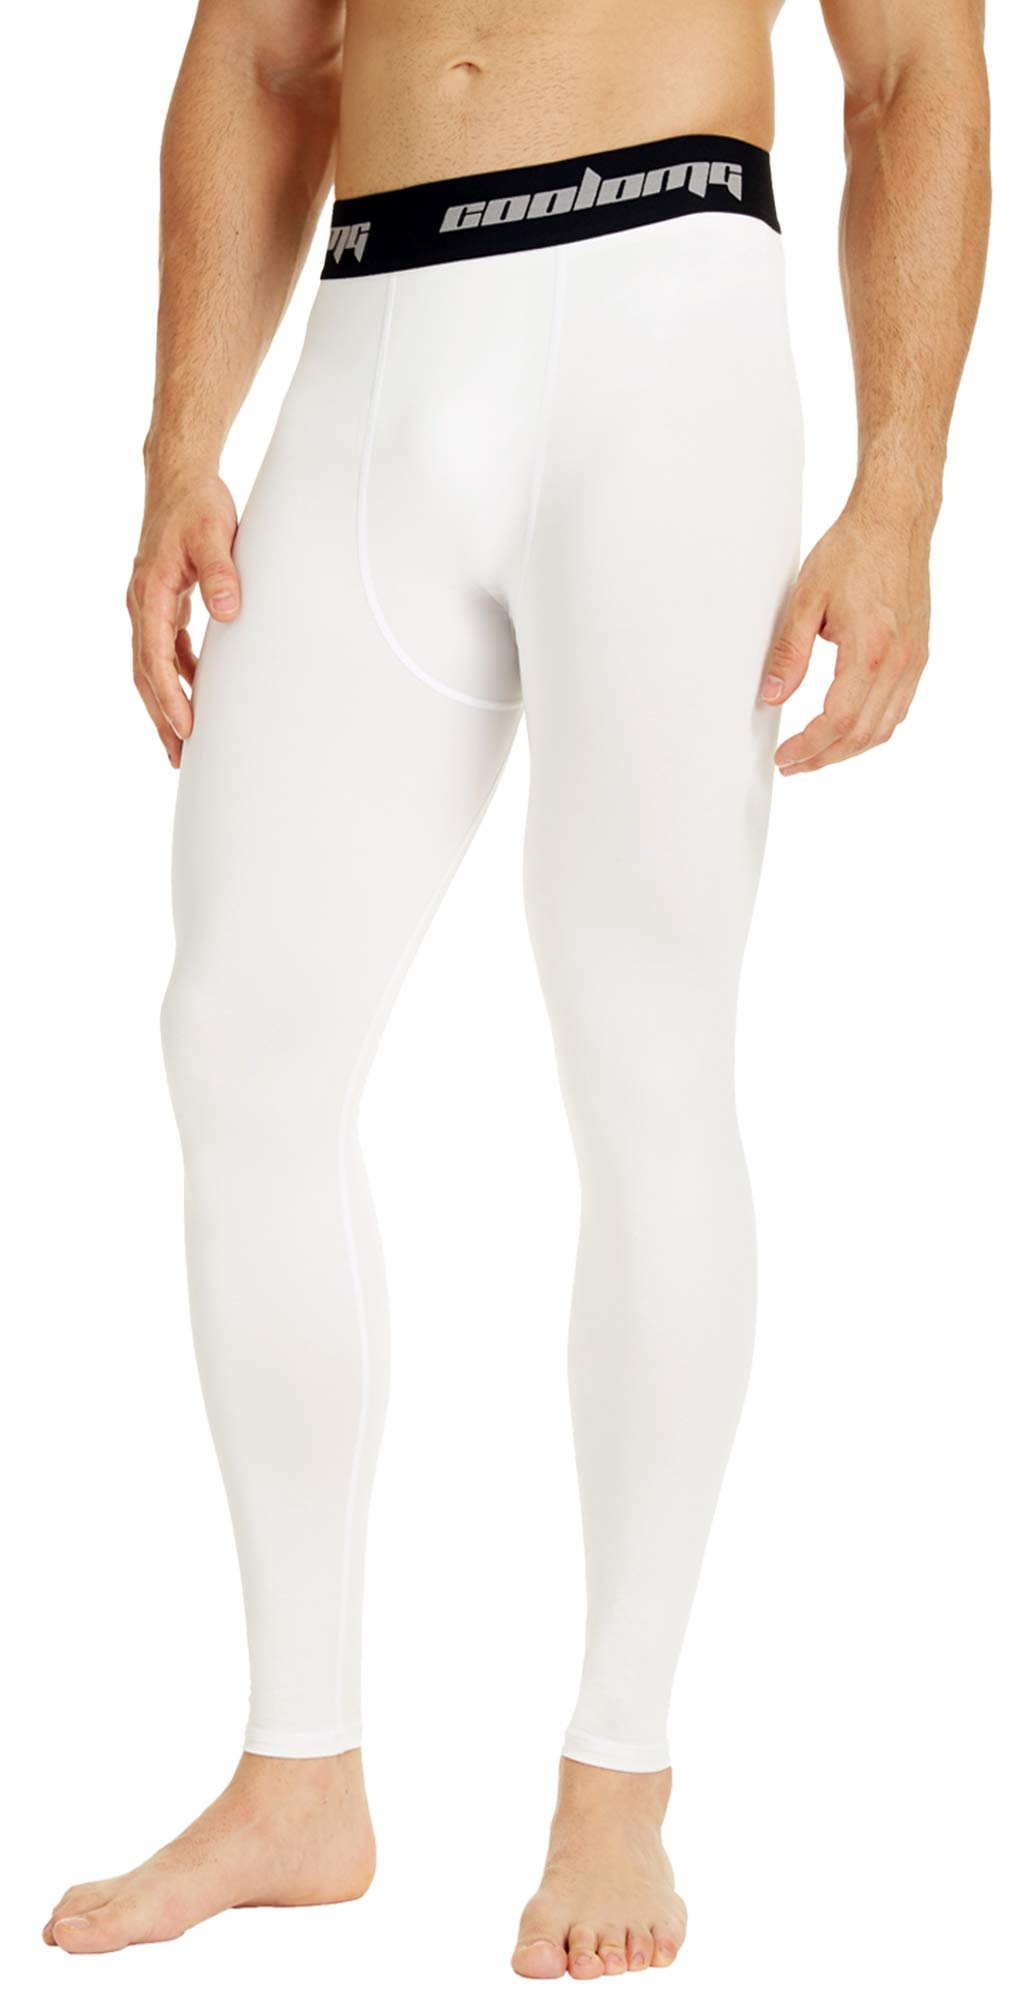 53ee8d06da51d Galleon - COOLOMG Mens Compression Pants Baselayer Cool Dry Sports Pants  Leg Tights For Men Boys Youth White S